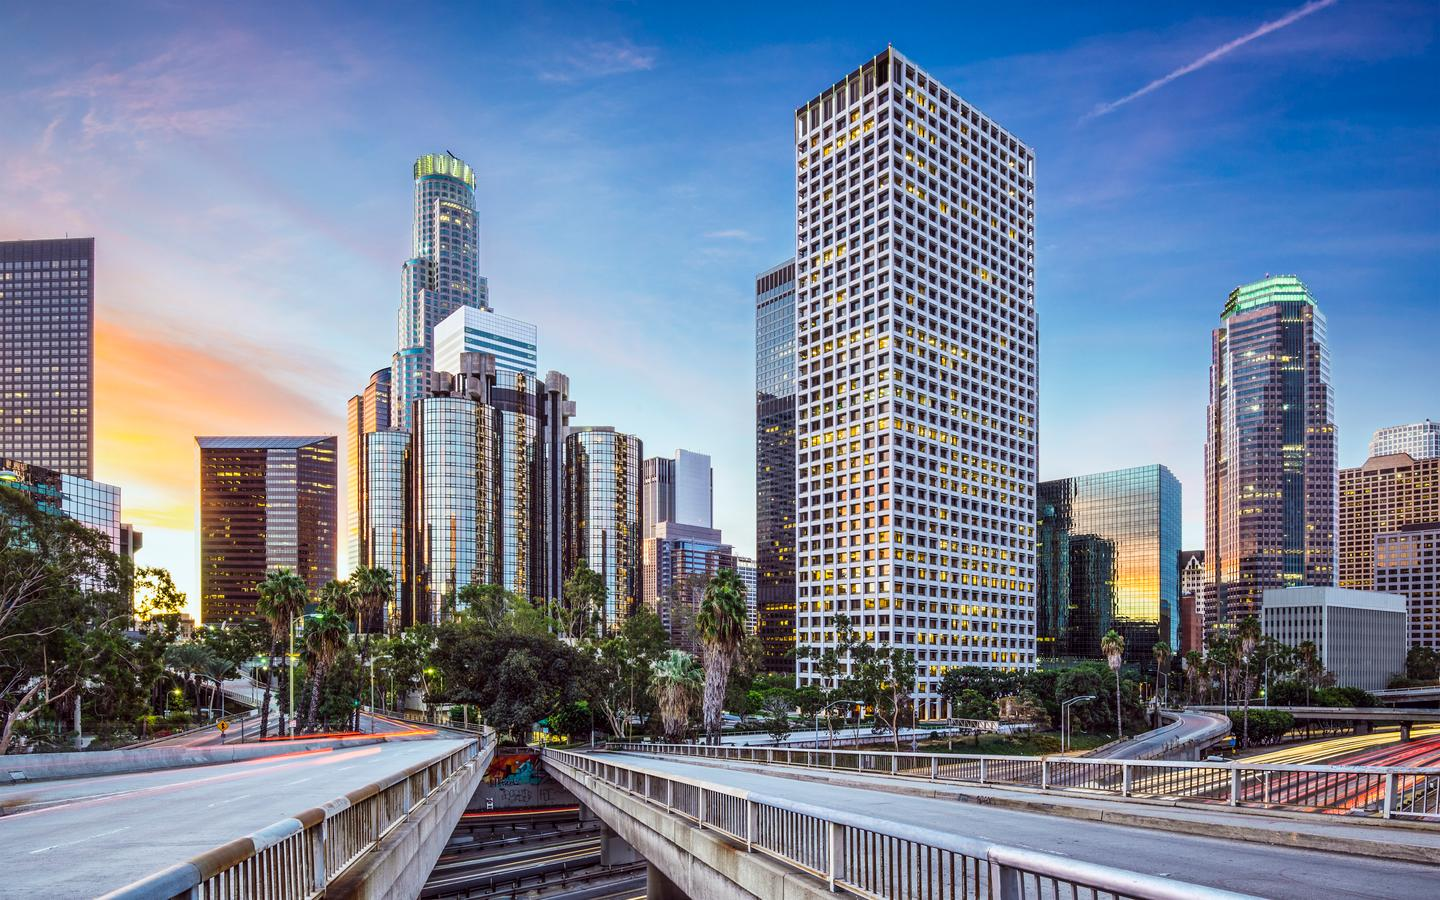 16 Best Hotels in Los Angeles  Hotels from $31/night - KAYAK